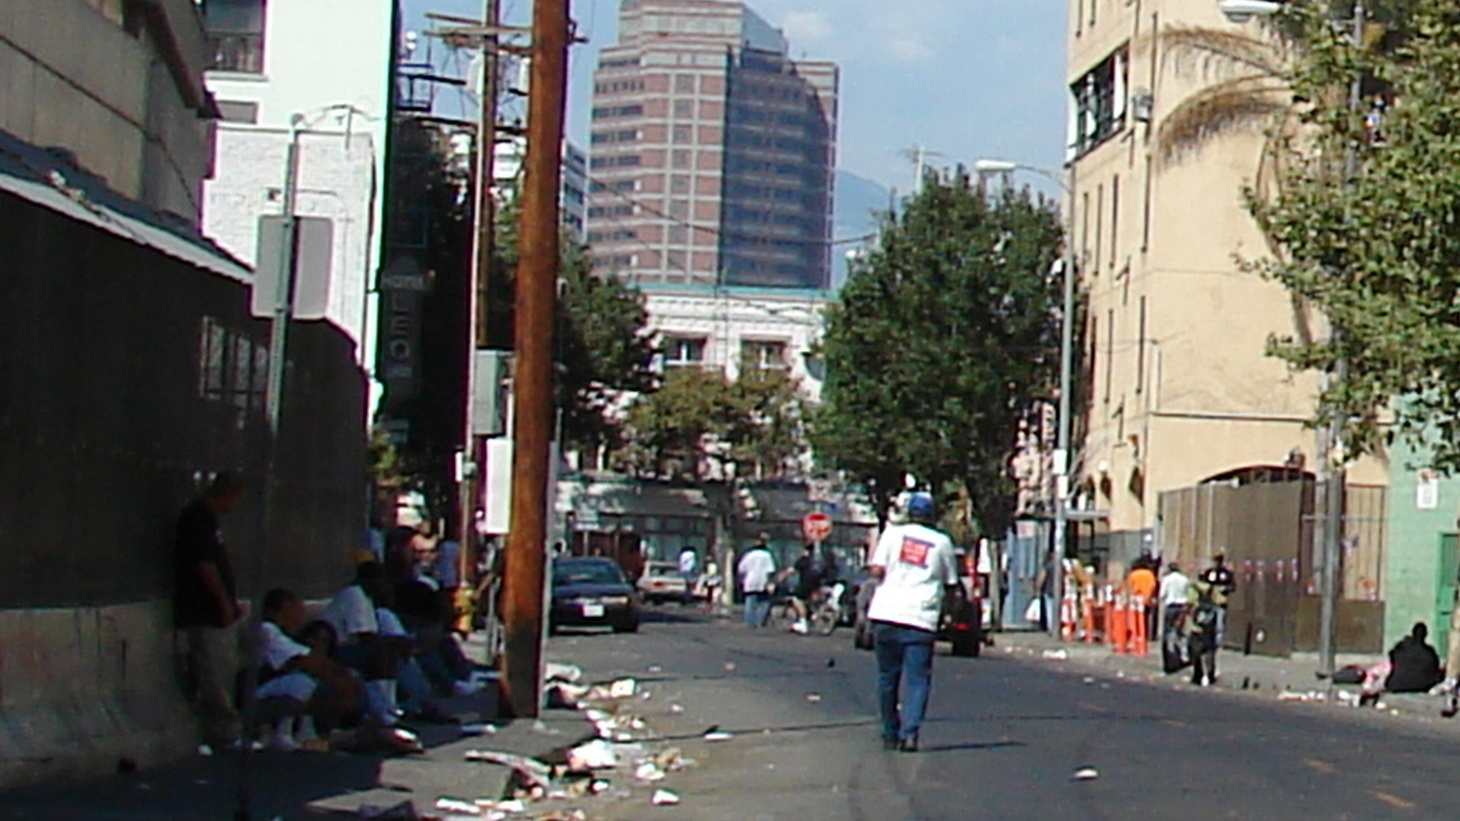 """Community Redevelopment Agencies used tax money to bring new life to downtown LA, Hollywood and other """"blighted areas,"""" but their sweeping power to seize private property led to charges of corruption and profiteering. After shutting the CRA's down four years ago, Governor Brown has approved new agencies -- with a different name but similar powers. Is it a distinction without a difference?"""